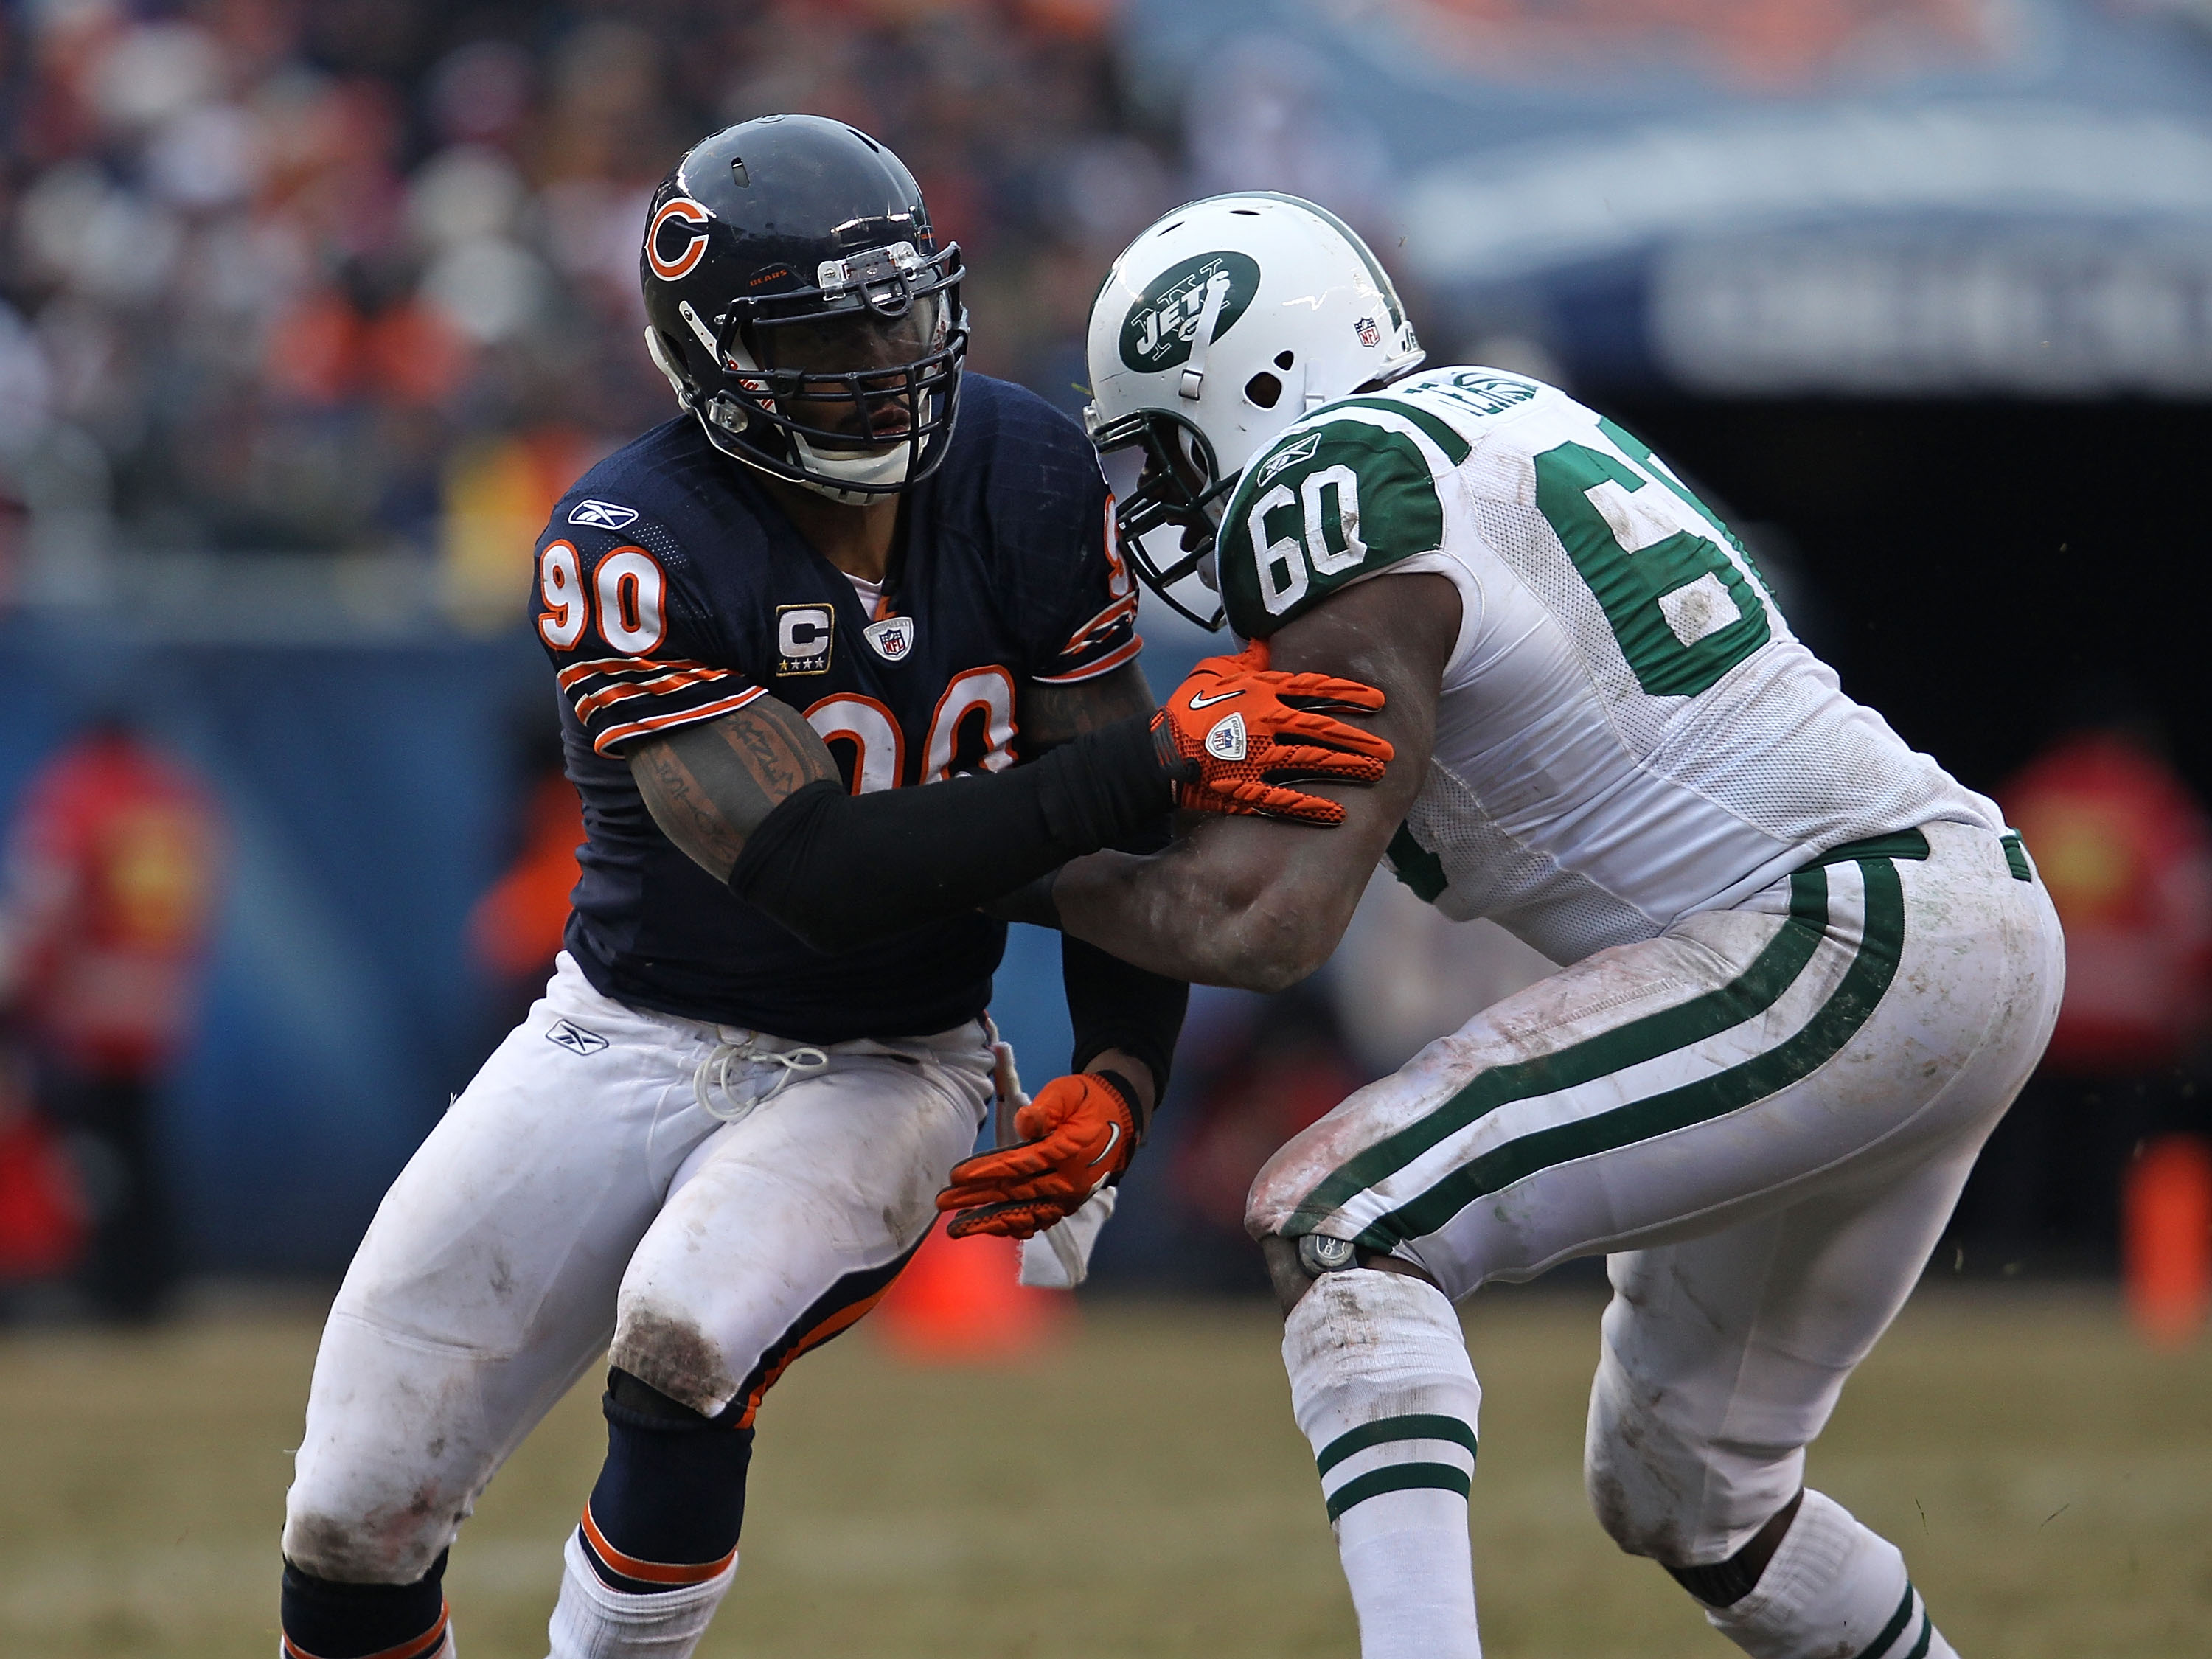 CHICAGO, IL - DECEMBER 26: Julius Peppers #90 of the Chicago Bears rushes against D' Brickashaw Ferguson #60 of the New York Jets at Soldier Field on December 26, 2010 in Chicago, Illinois. The Bears defeated the Jets 38-34. (Photo by Jonathan Daniel/Gett